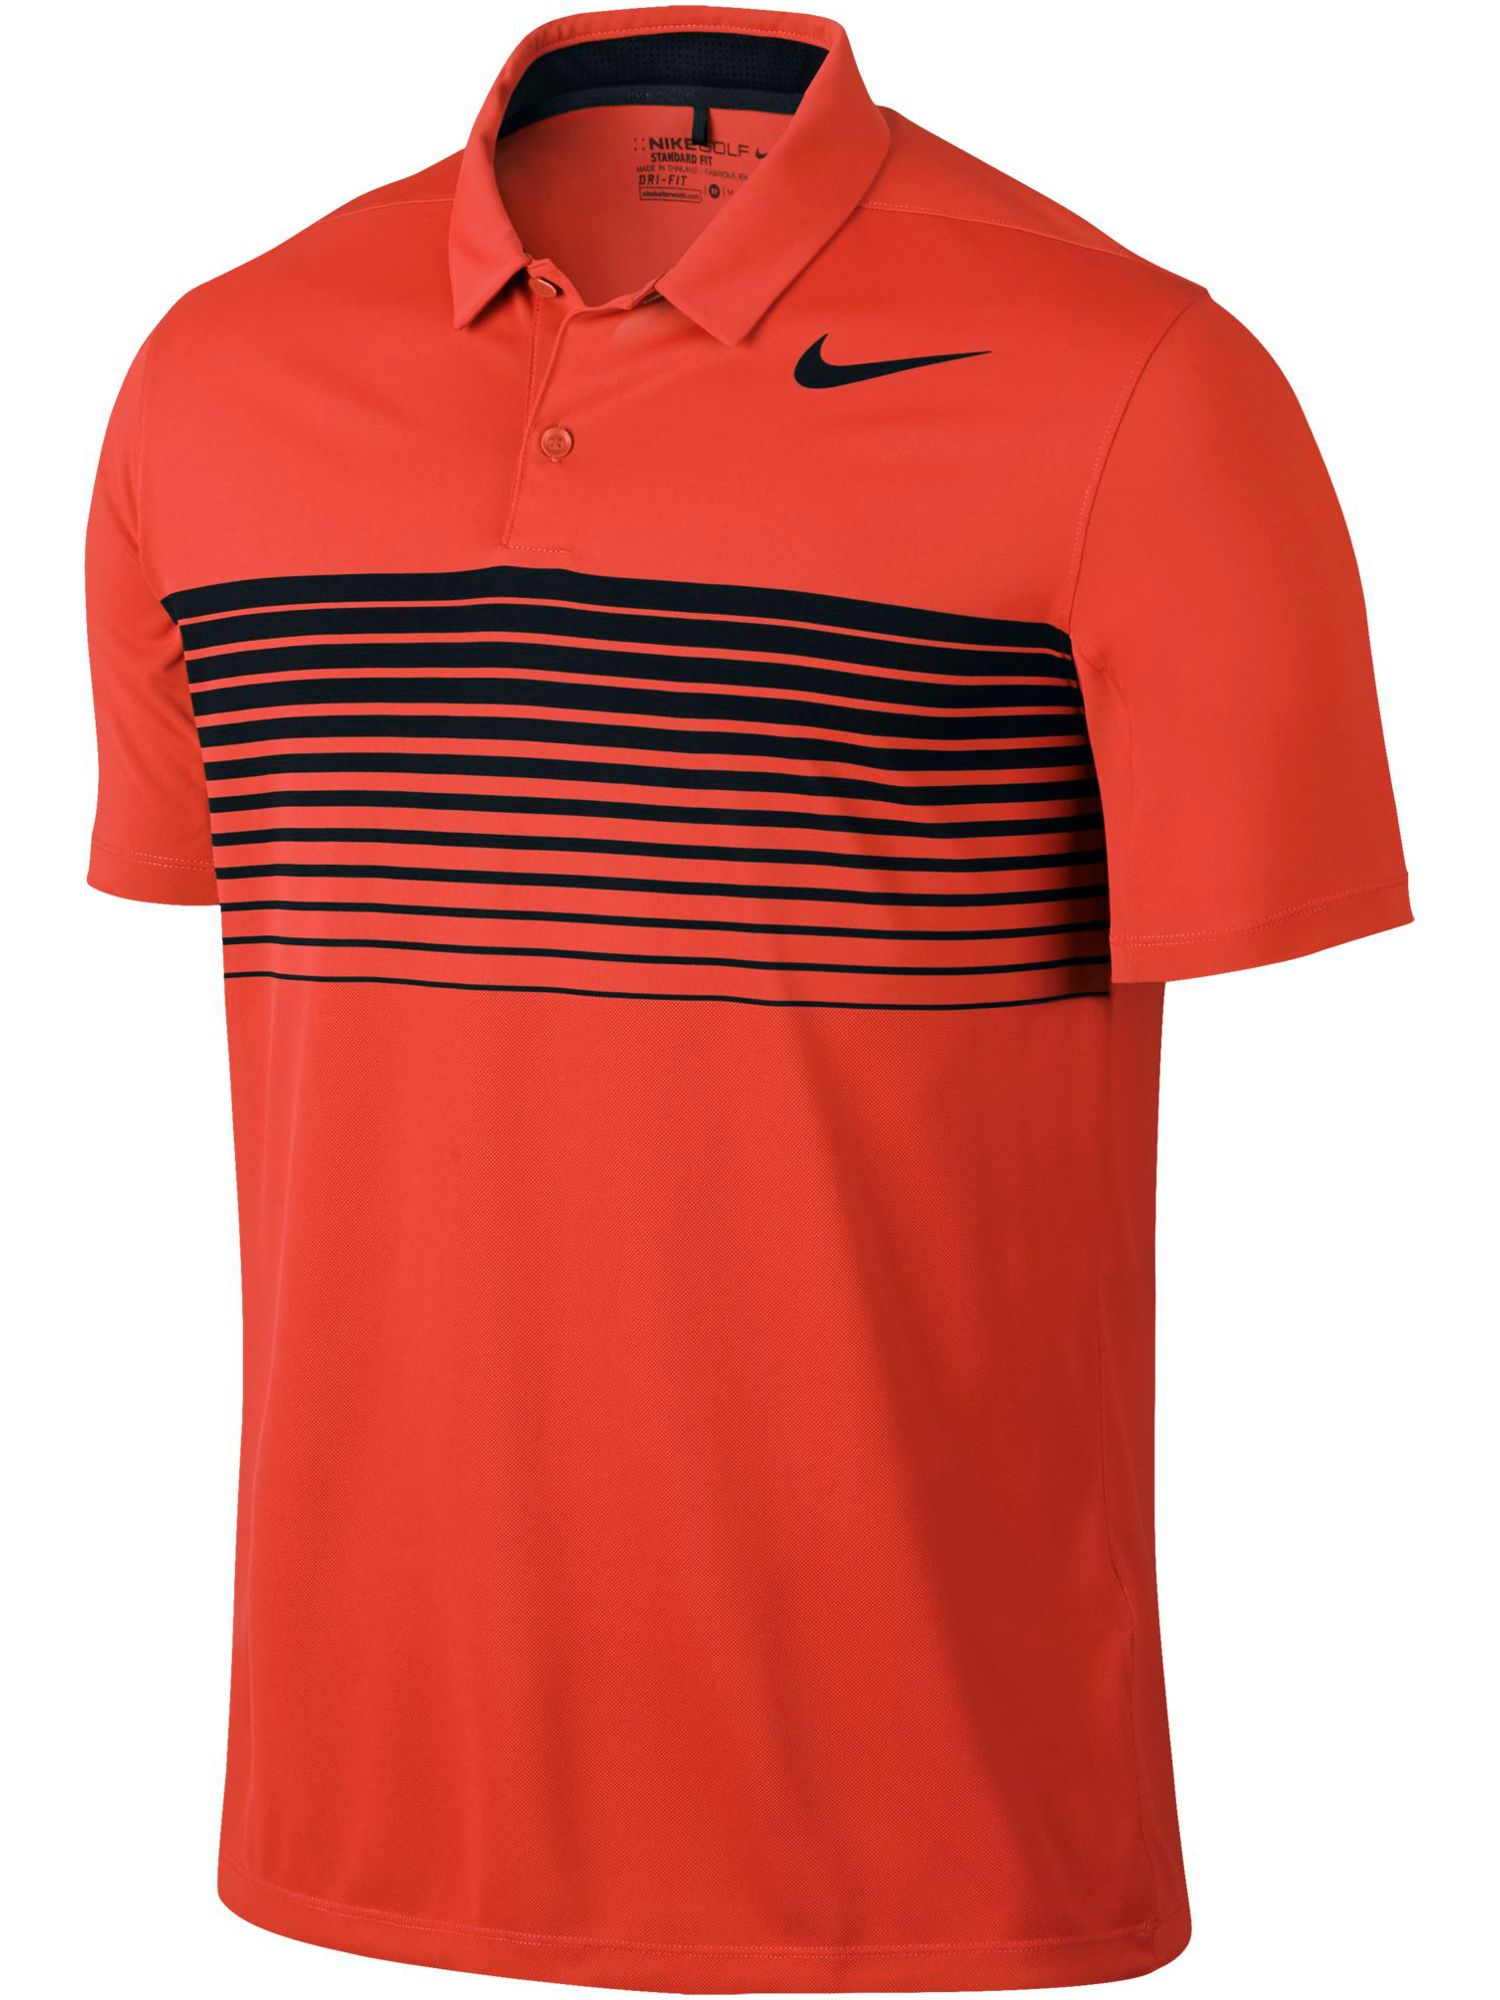 Men's Nike Mobility Speed Stripe Polo, Orange